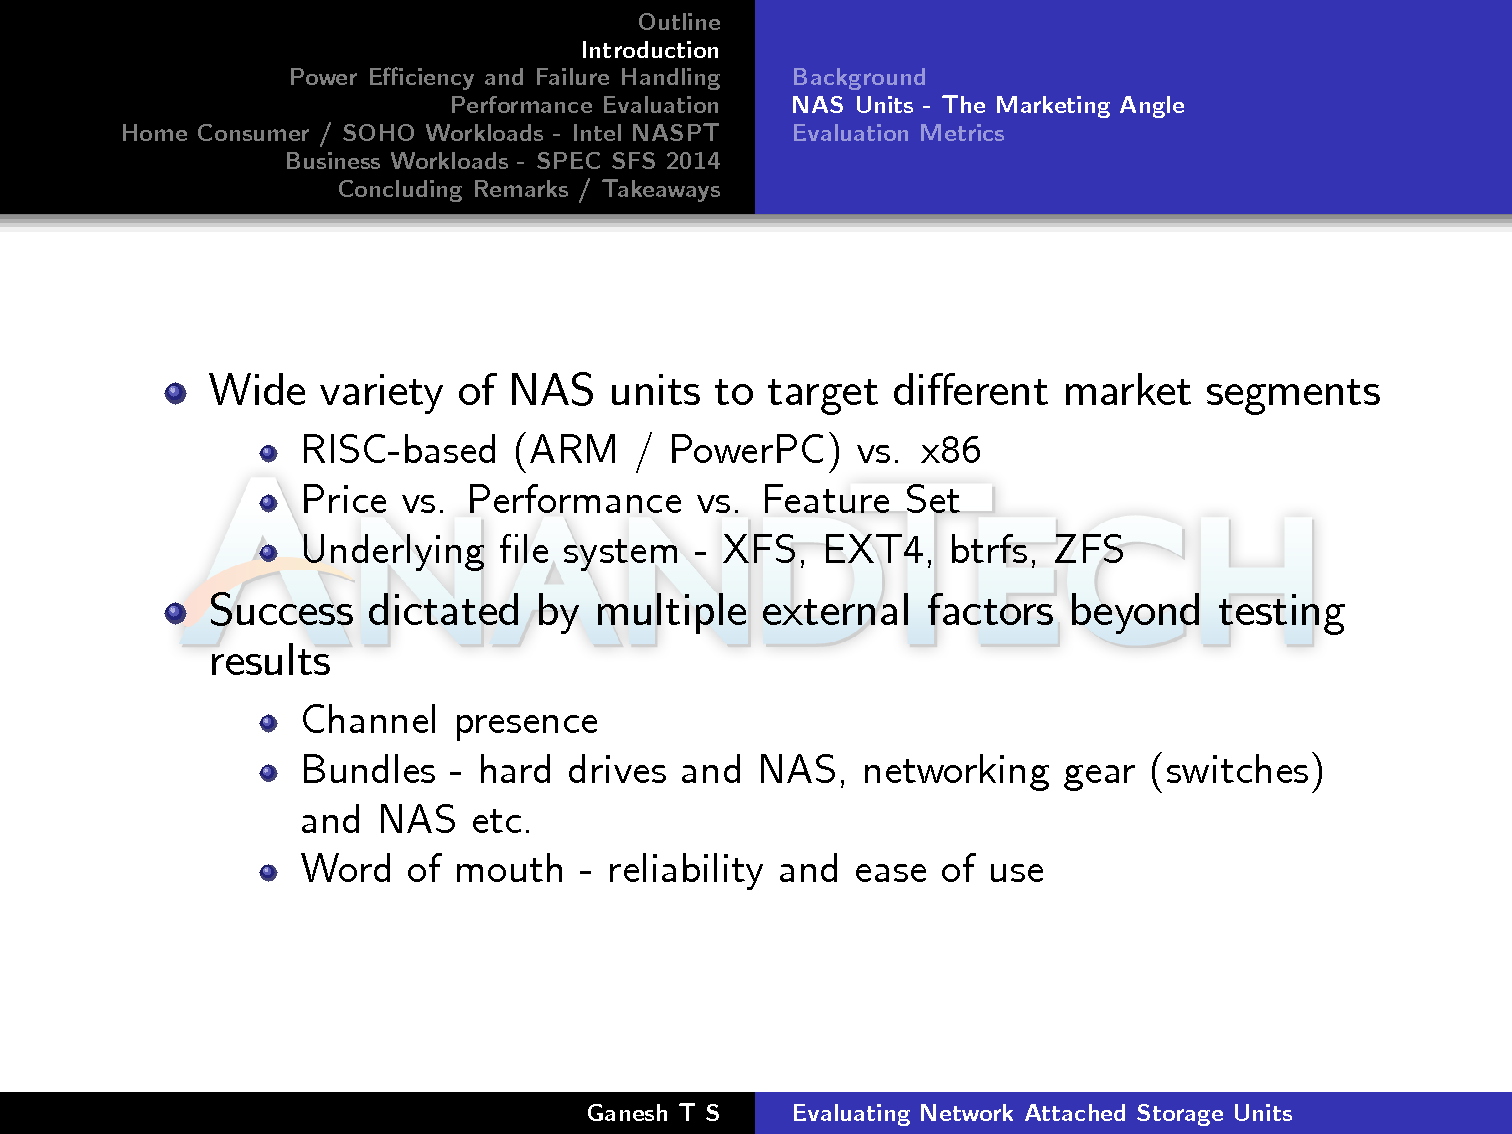 Behind The Scenes: Evaluating NAS Units with Solution-Based